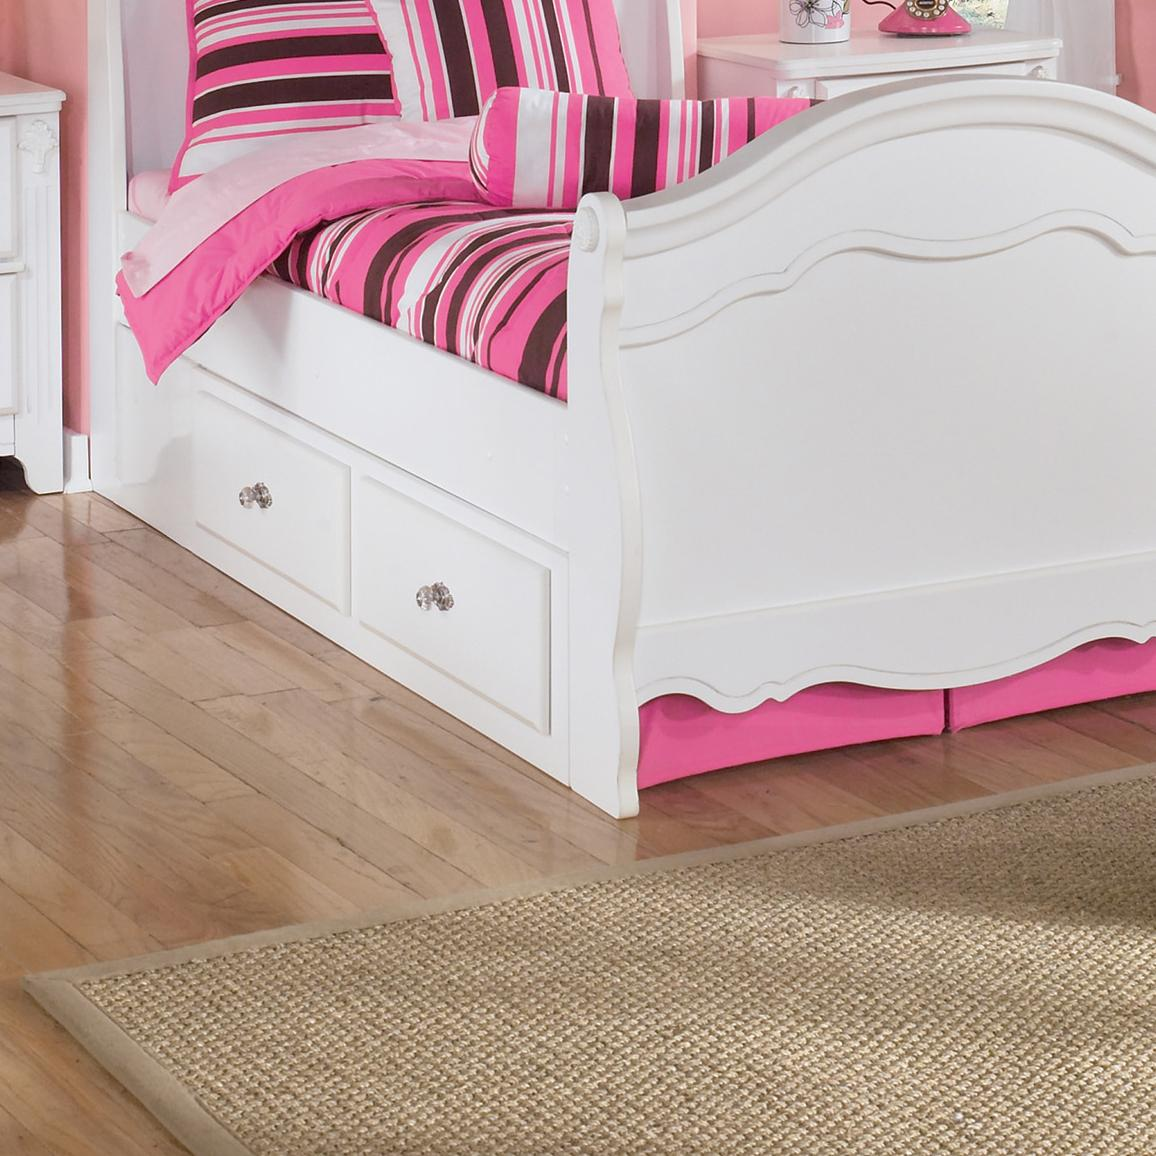 Exquisite Under Bed Storage by Signature Design by Ashley at Furniture Barn